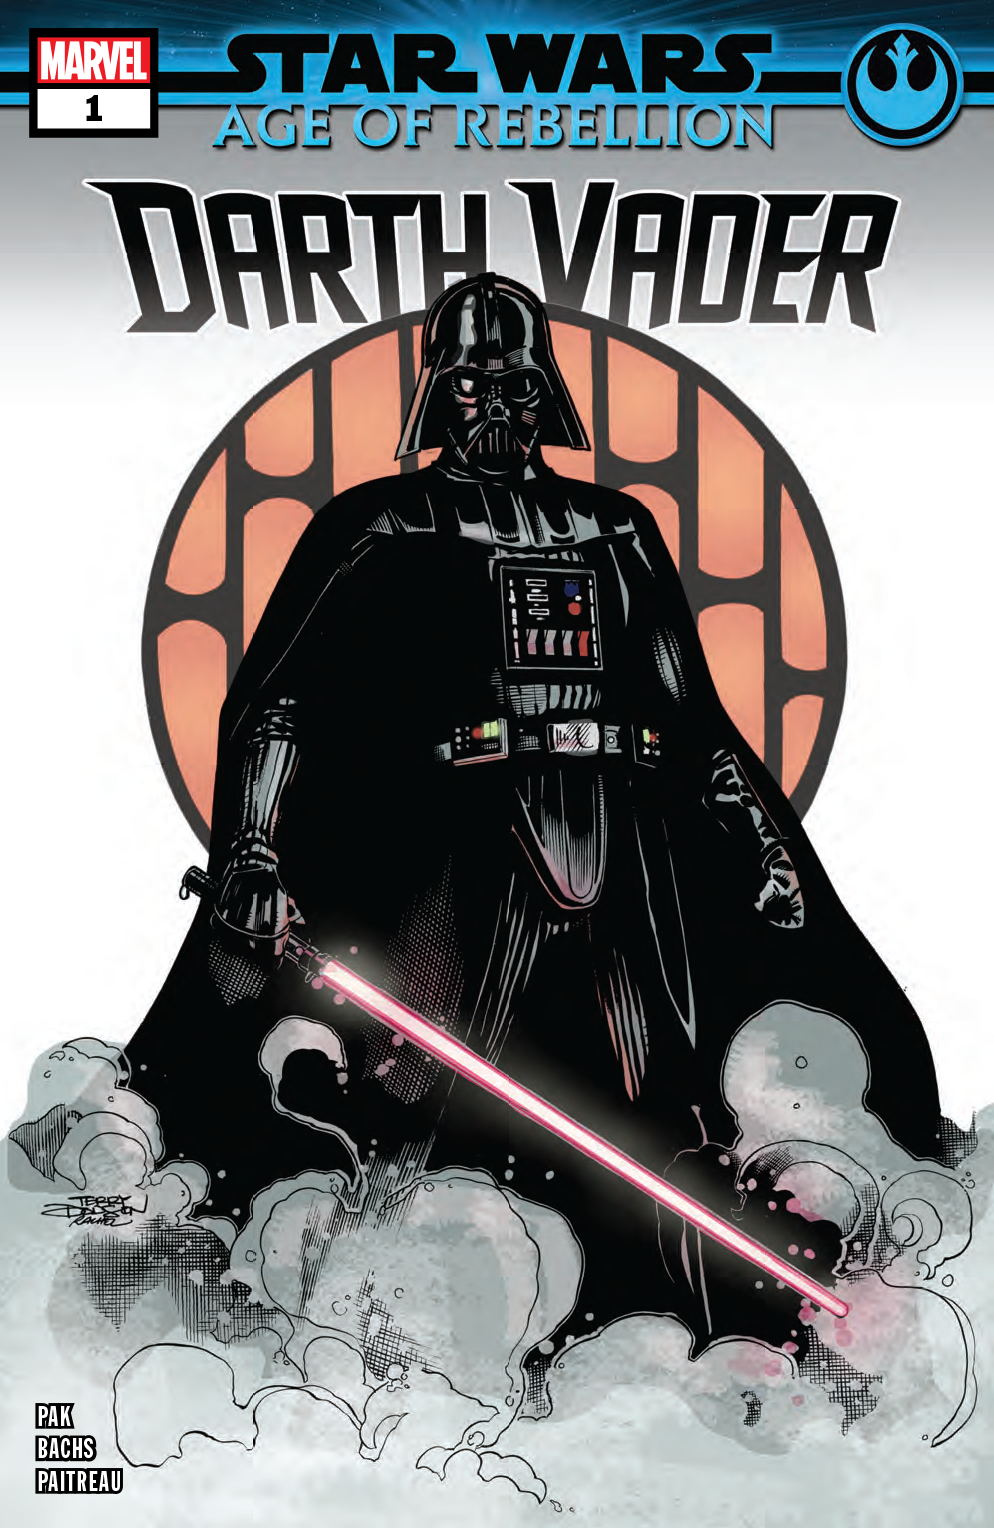 Star Wars - Age of Rebellion : Darth Vader 1 - To the Letter